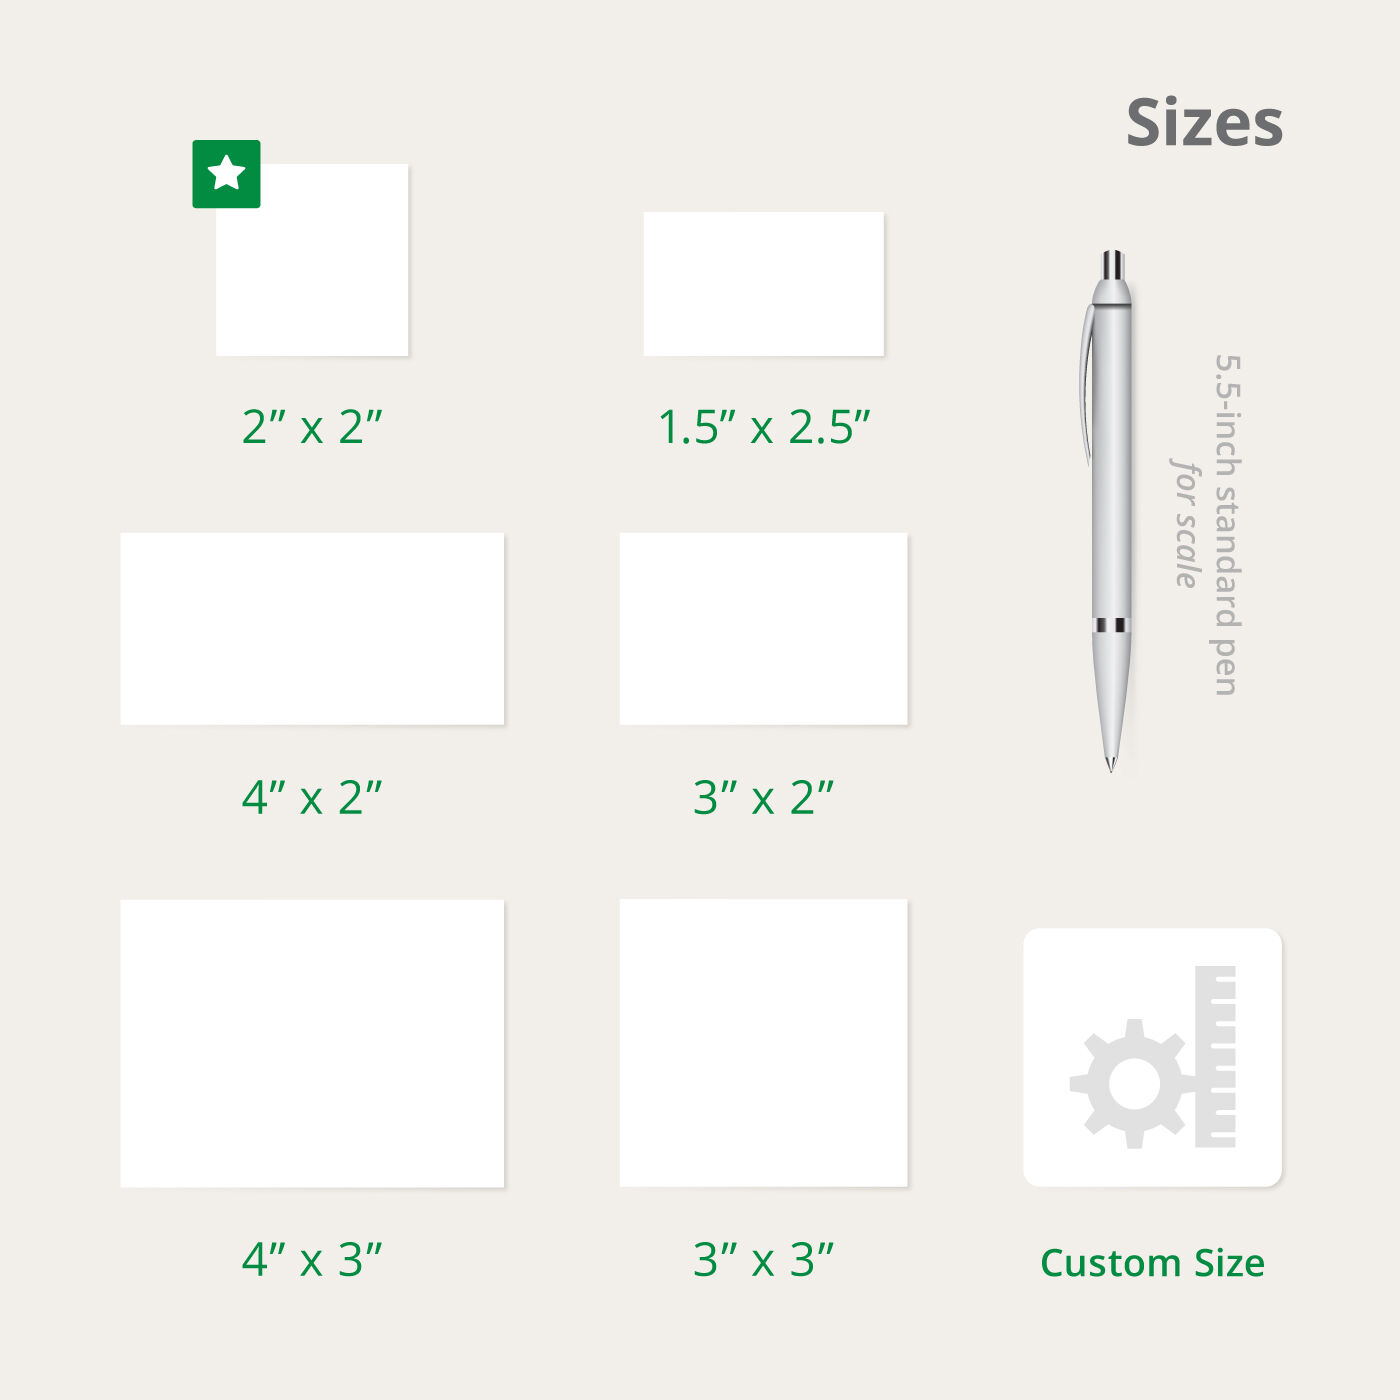 Cut-to-Size Sizes